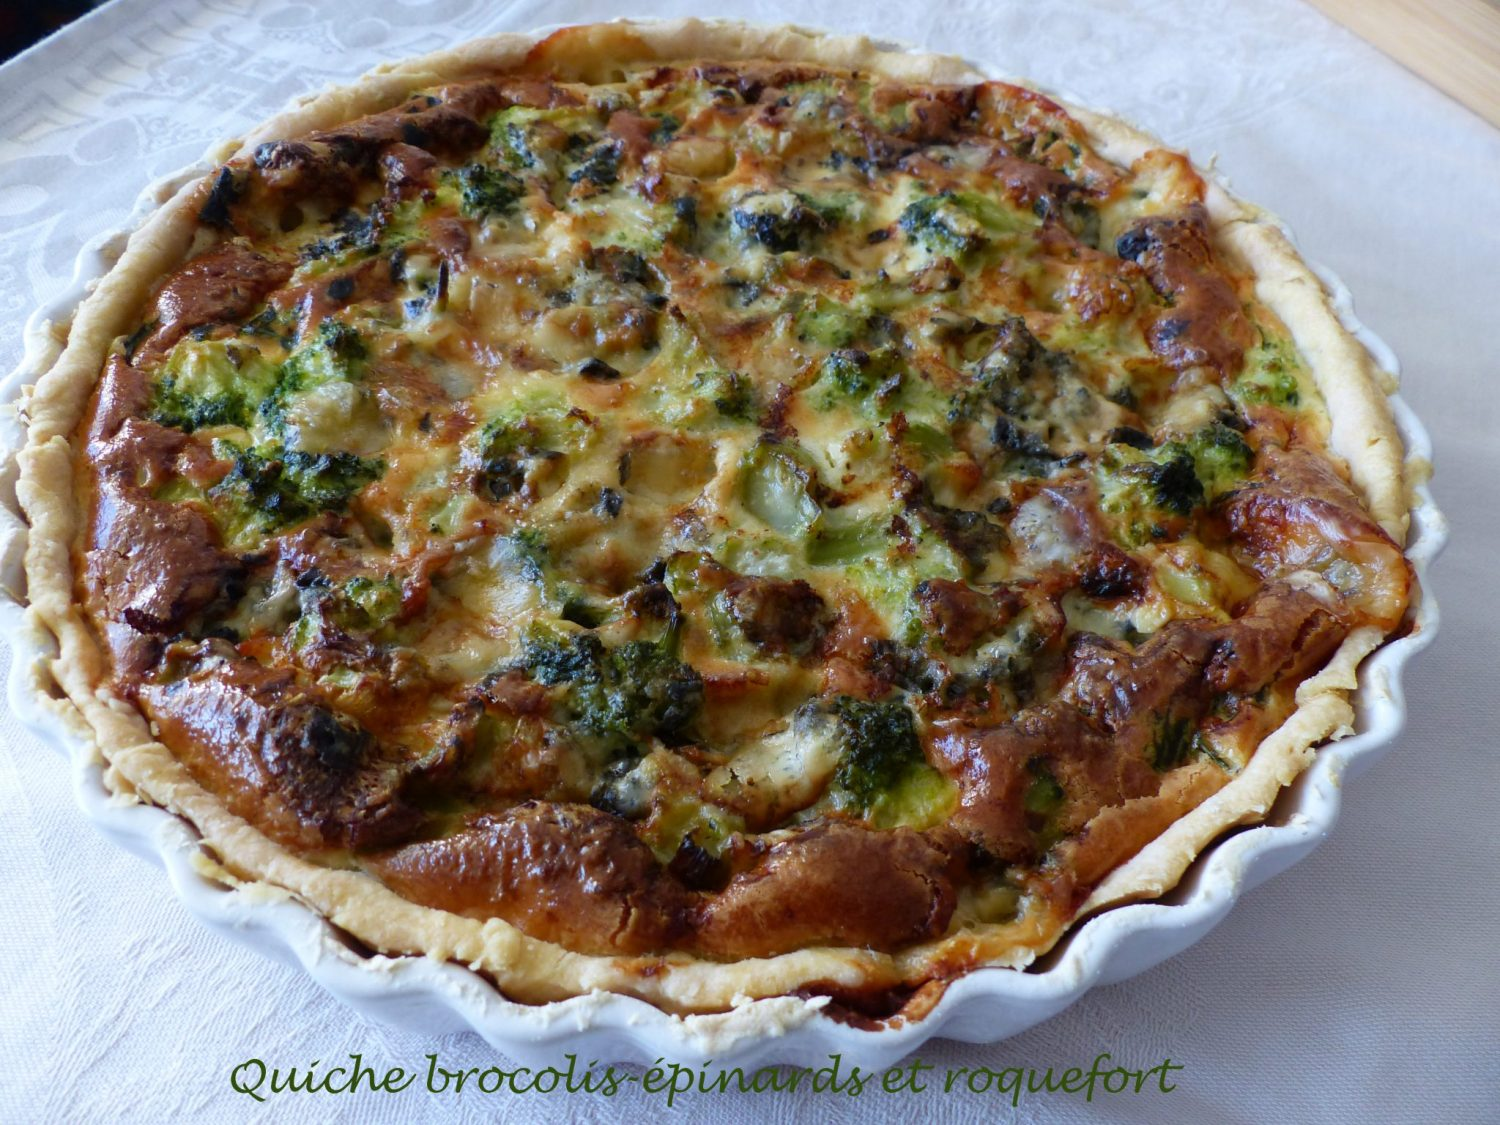 Quiche brocolis-épinards et roquefort P1140744 R